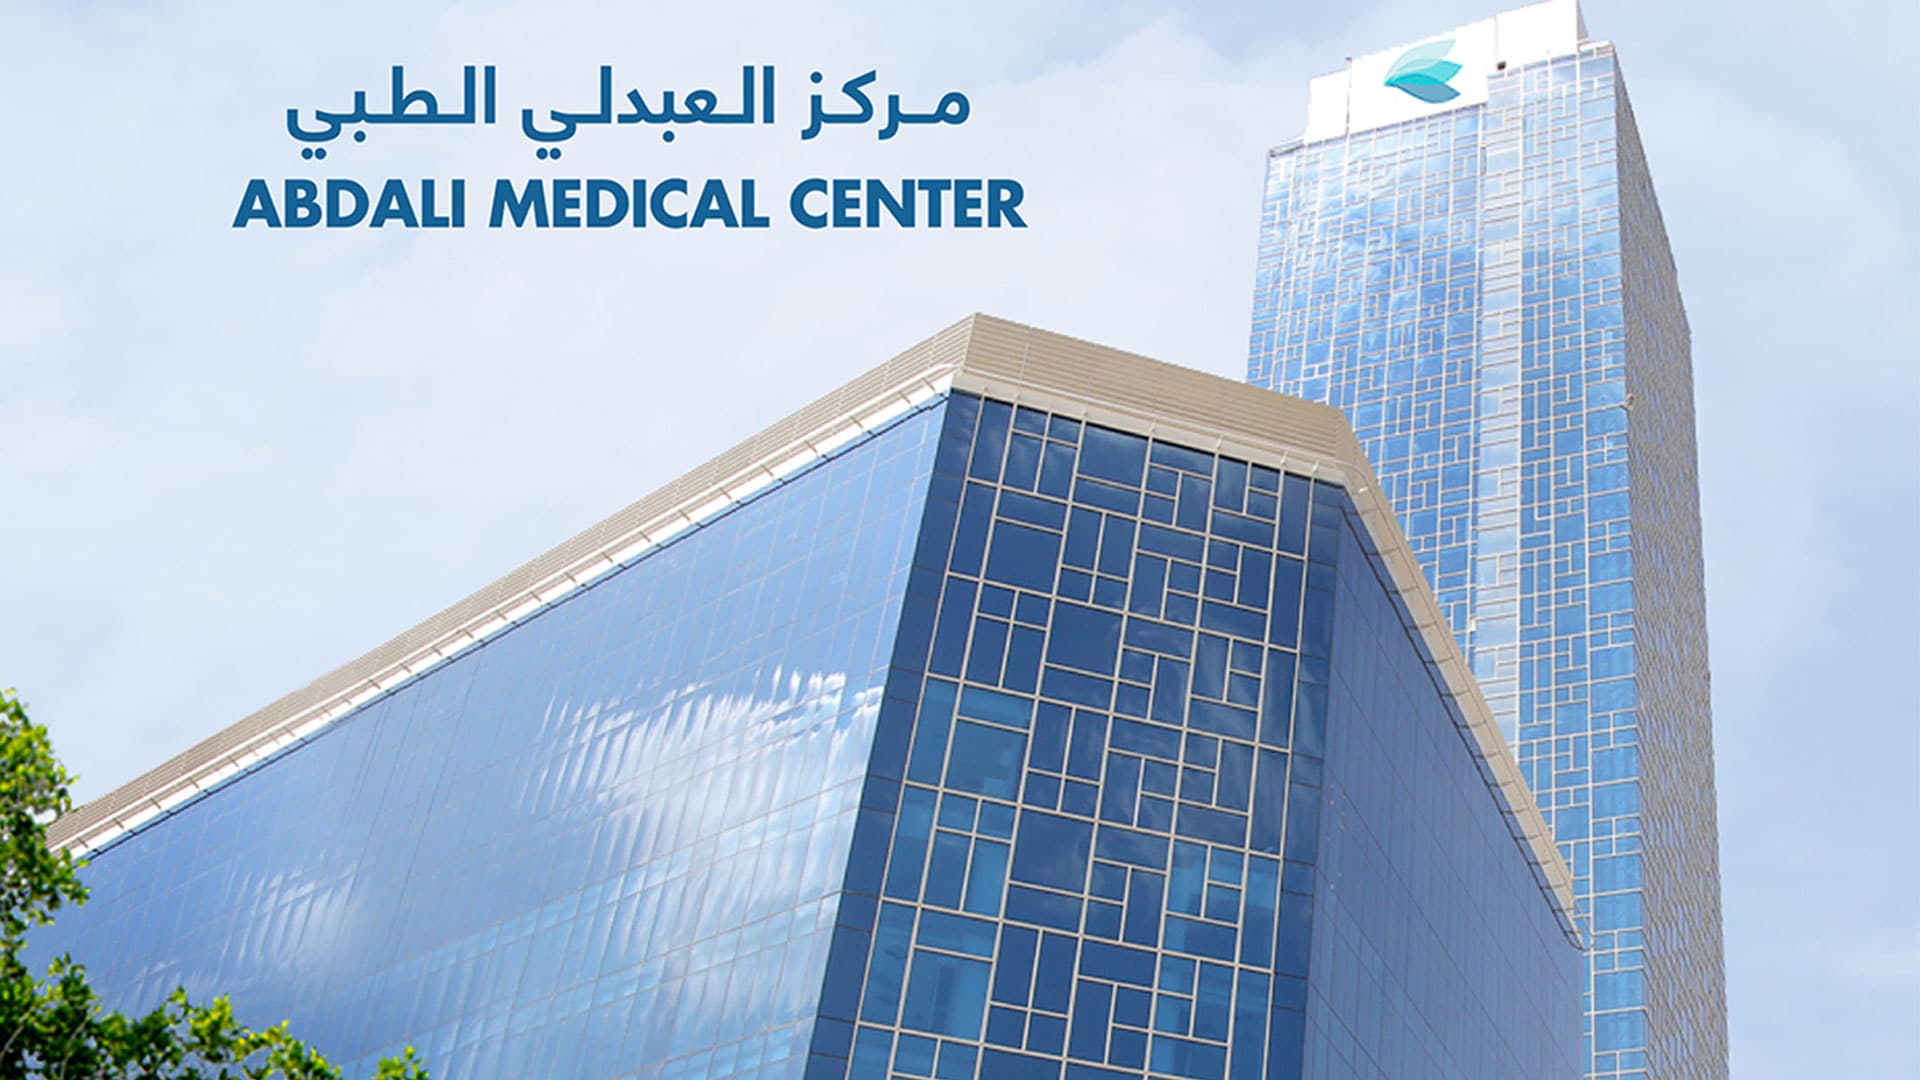 abdali-medical-center